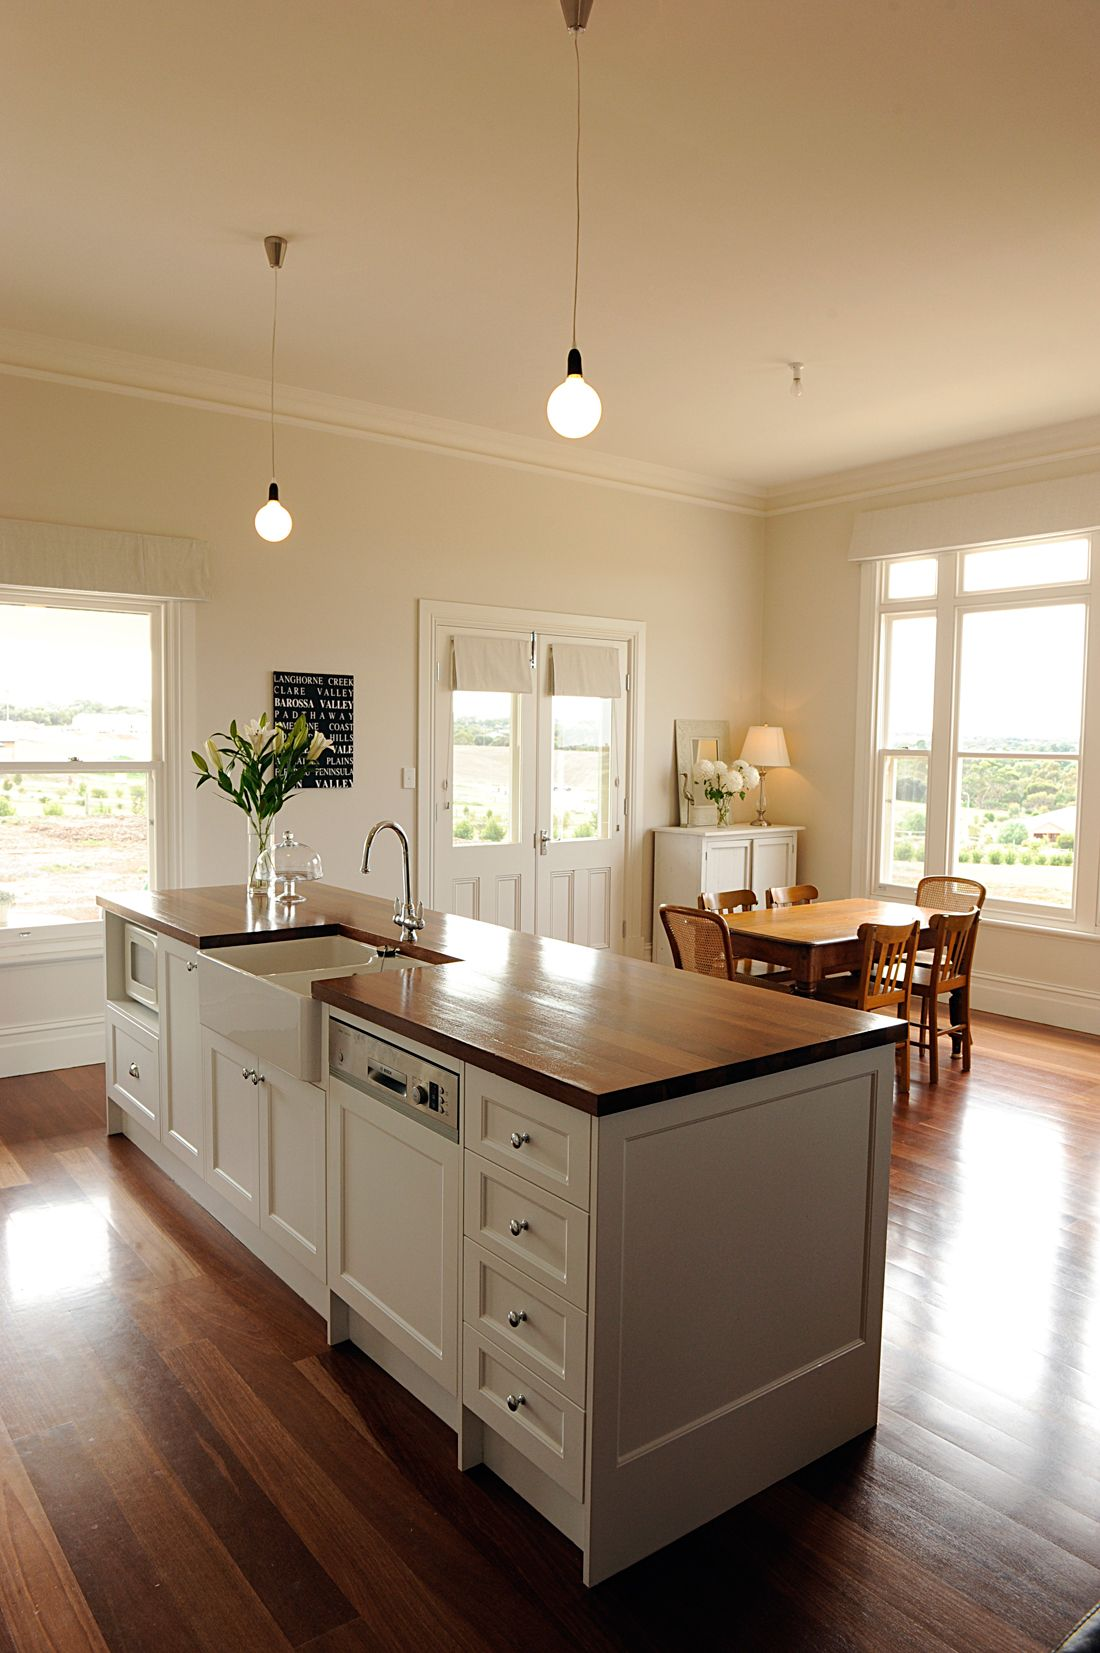 Small Kitchens With Islands For Seating Victorian Eaves And Gable Brackets Really Add To The Charm